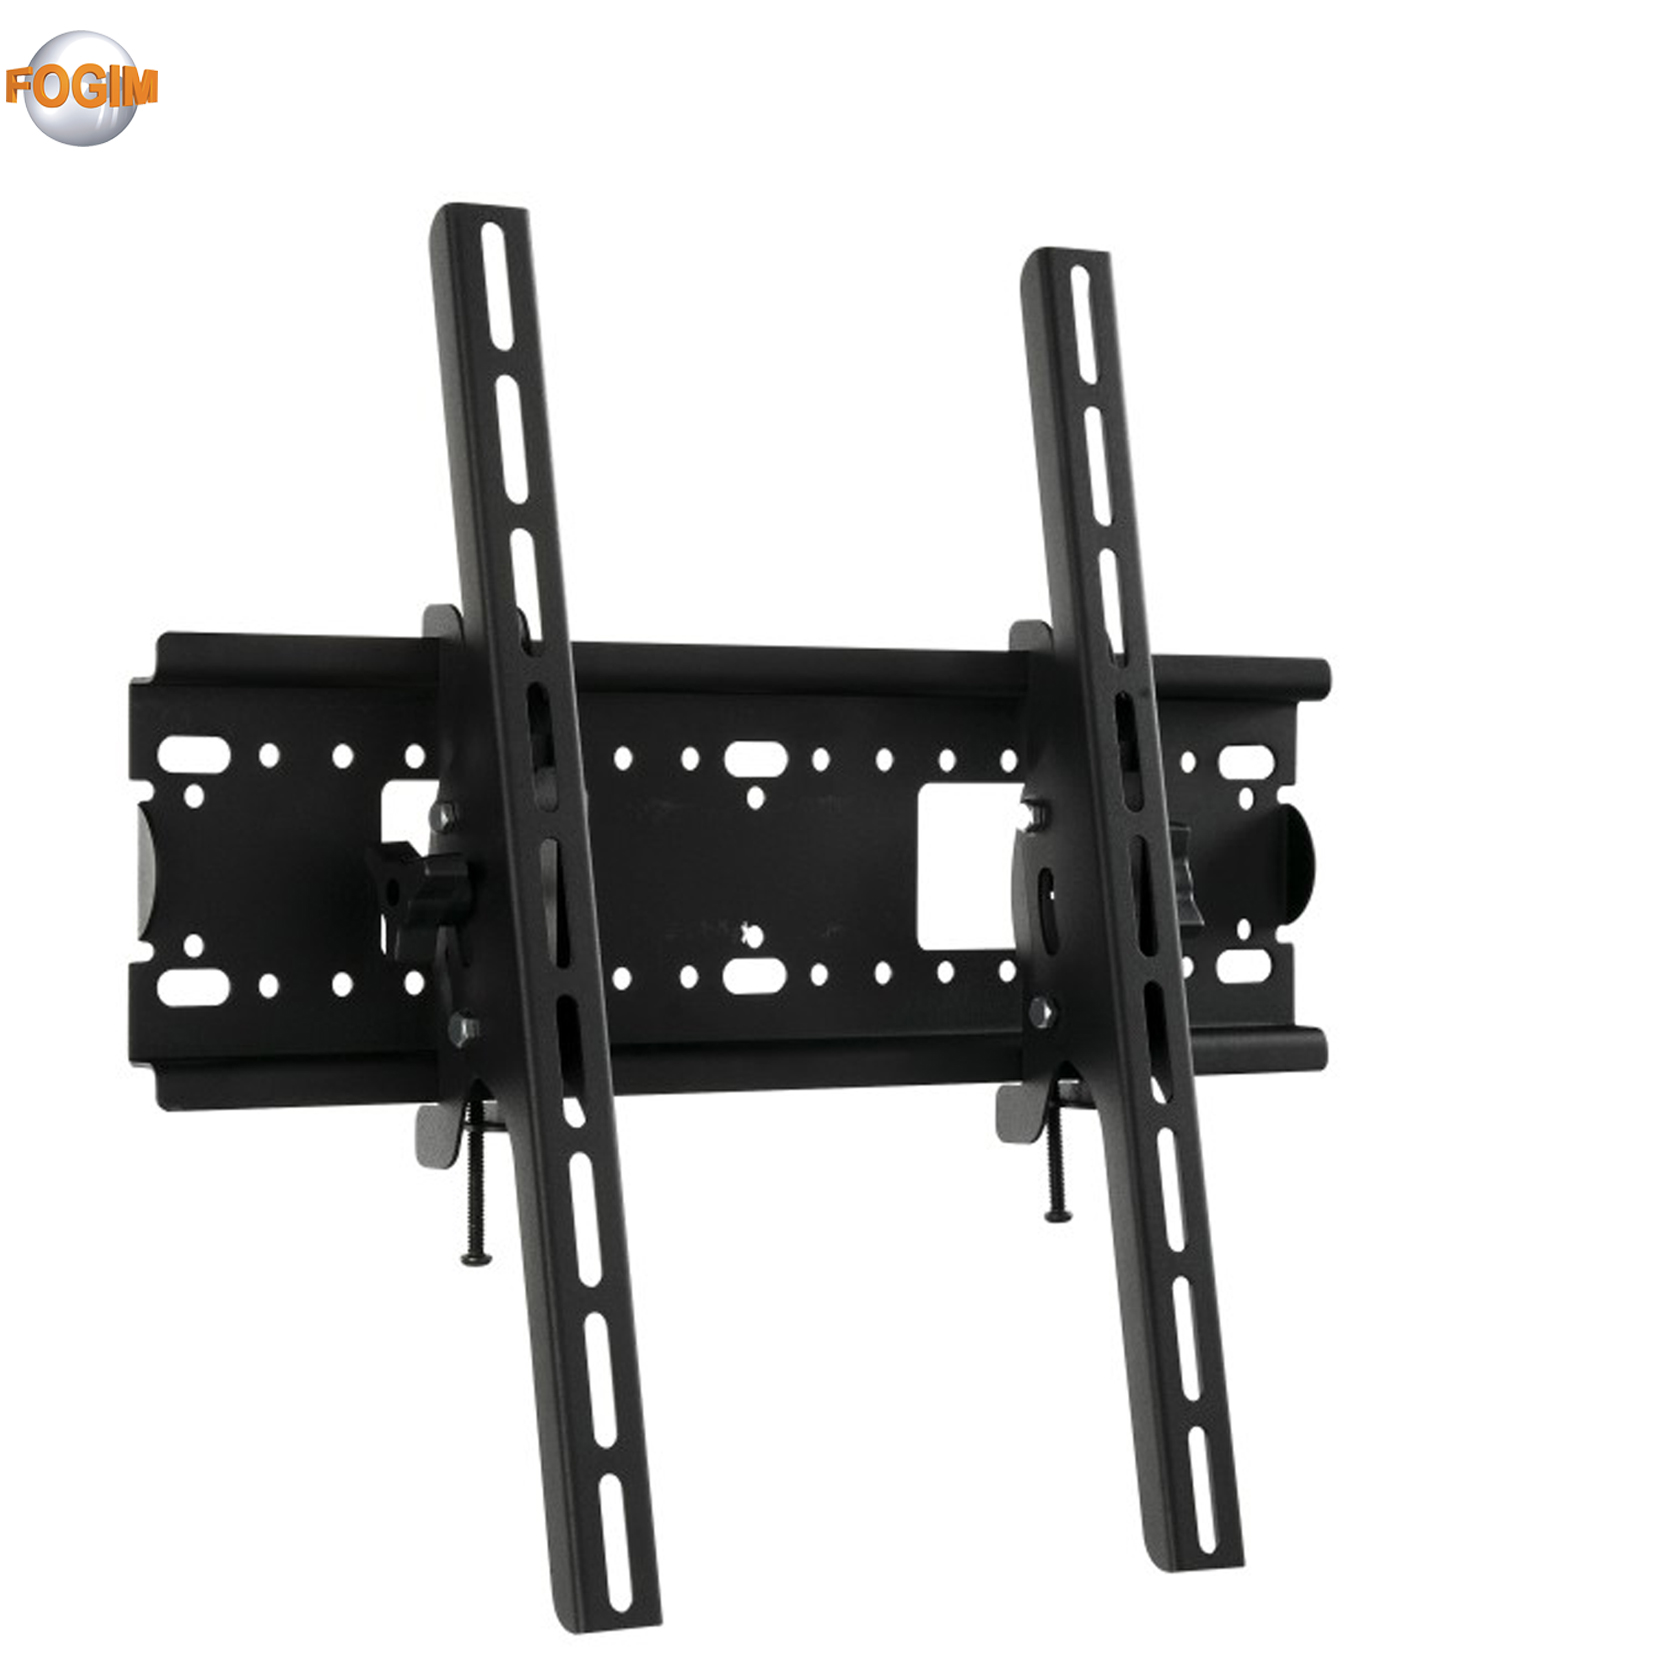 "180 Derajat Putar TV Dinding Mount Retractable Siku Braket TV (26 ""-42"")"